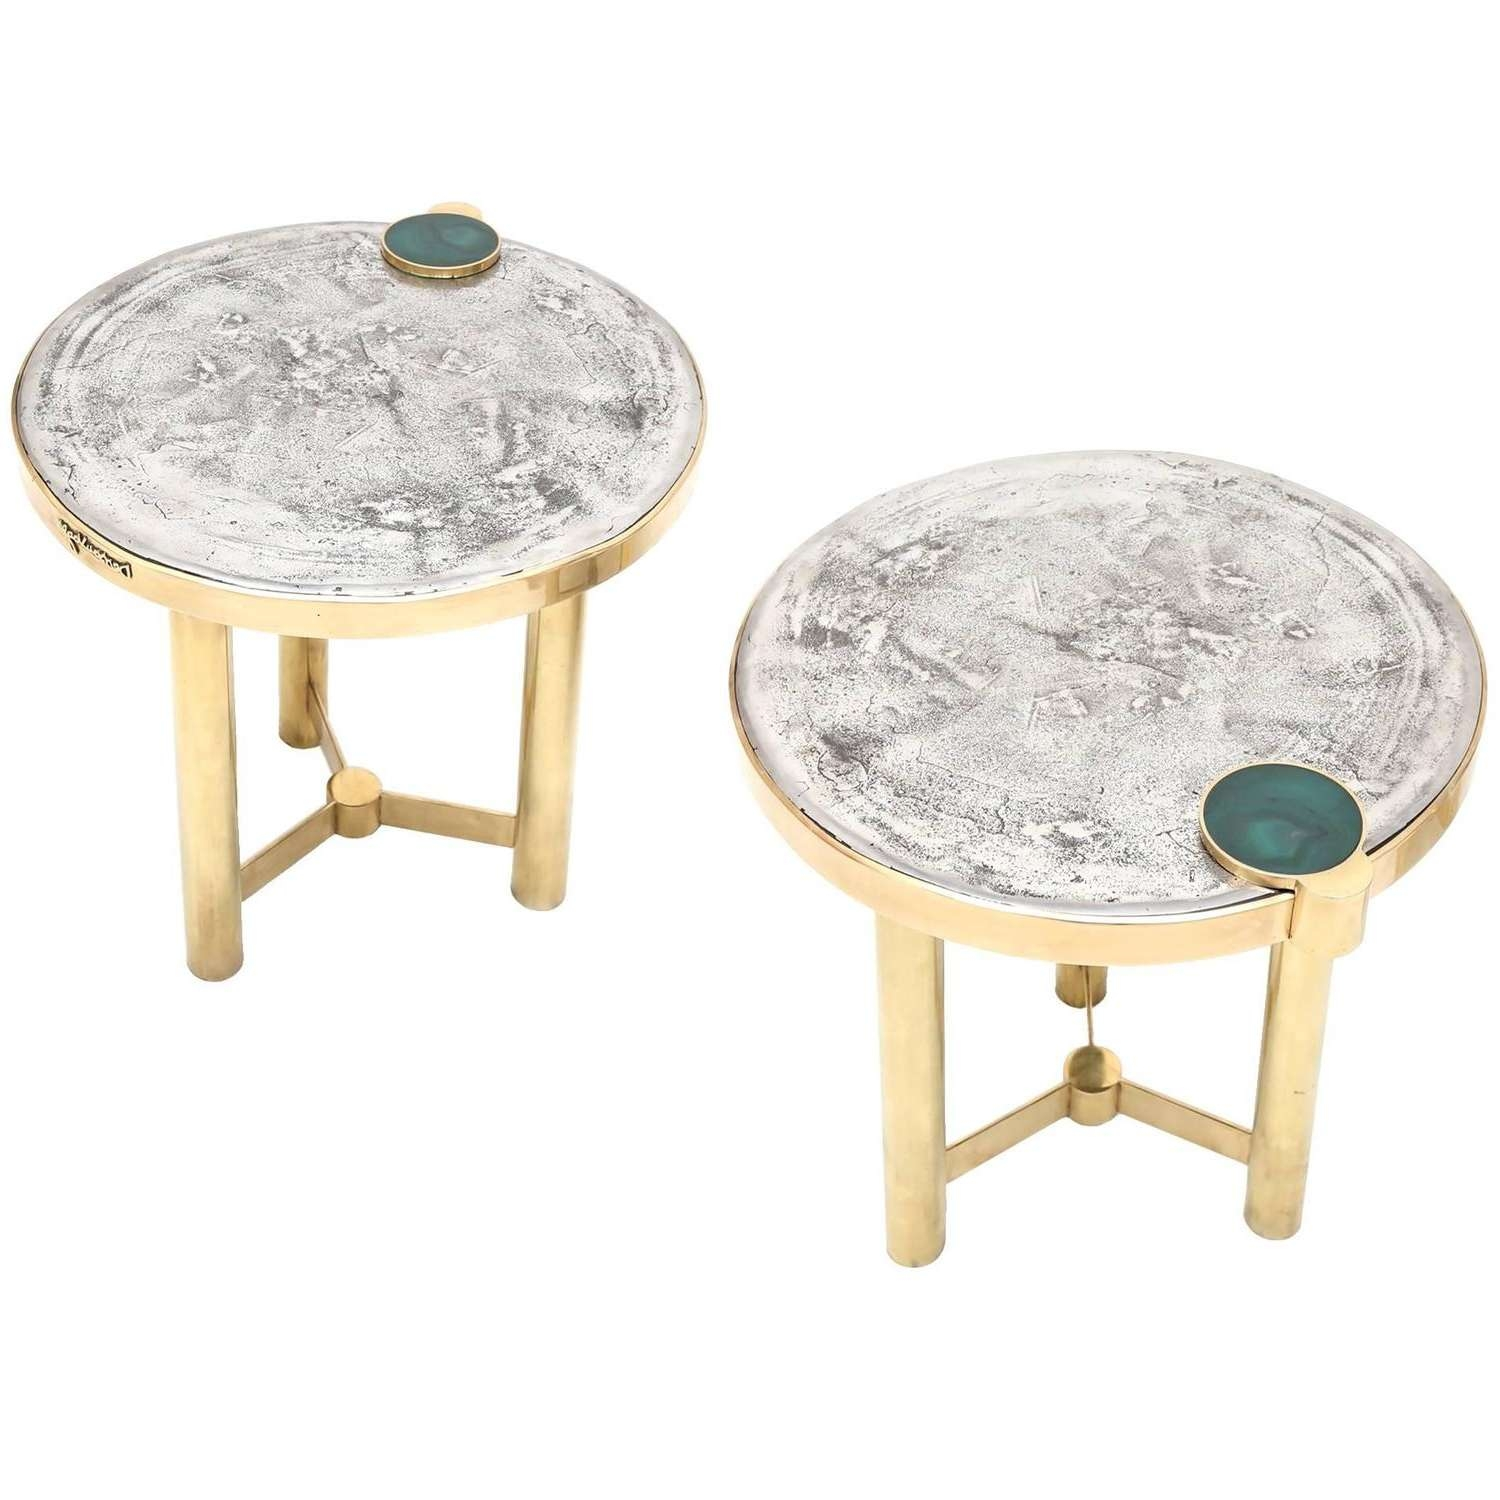 Best And Newest Coffee Tables And Side Table Sets For Moonraker Side Table Setdessauvages At 1stdibs (View 20 of 20)